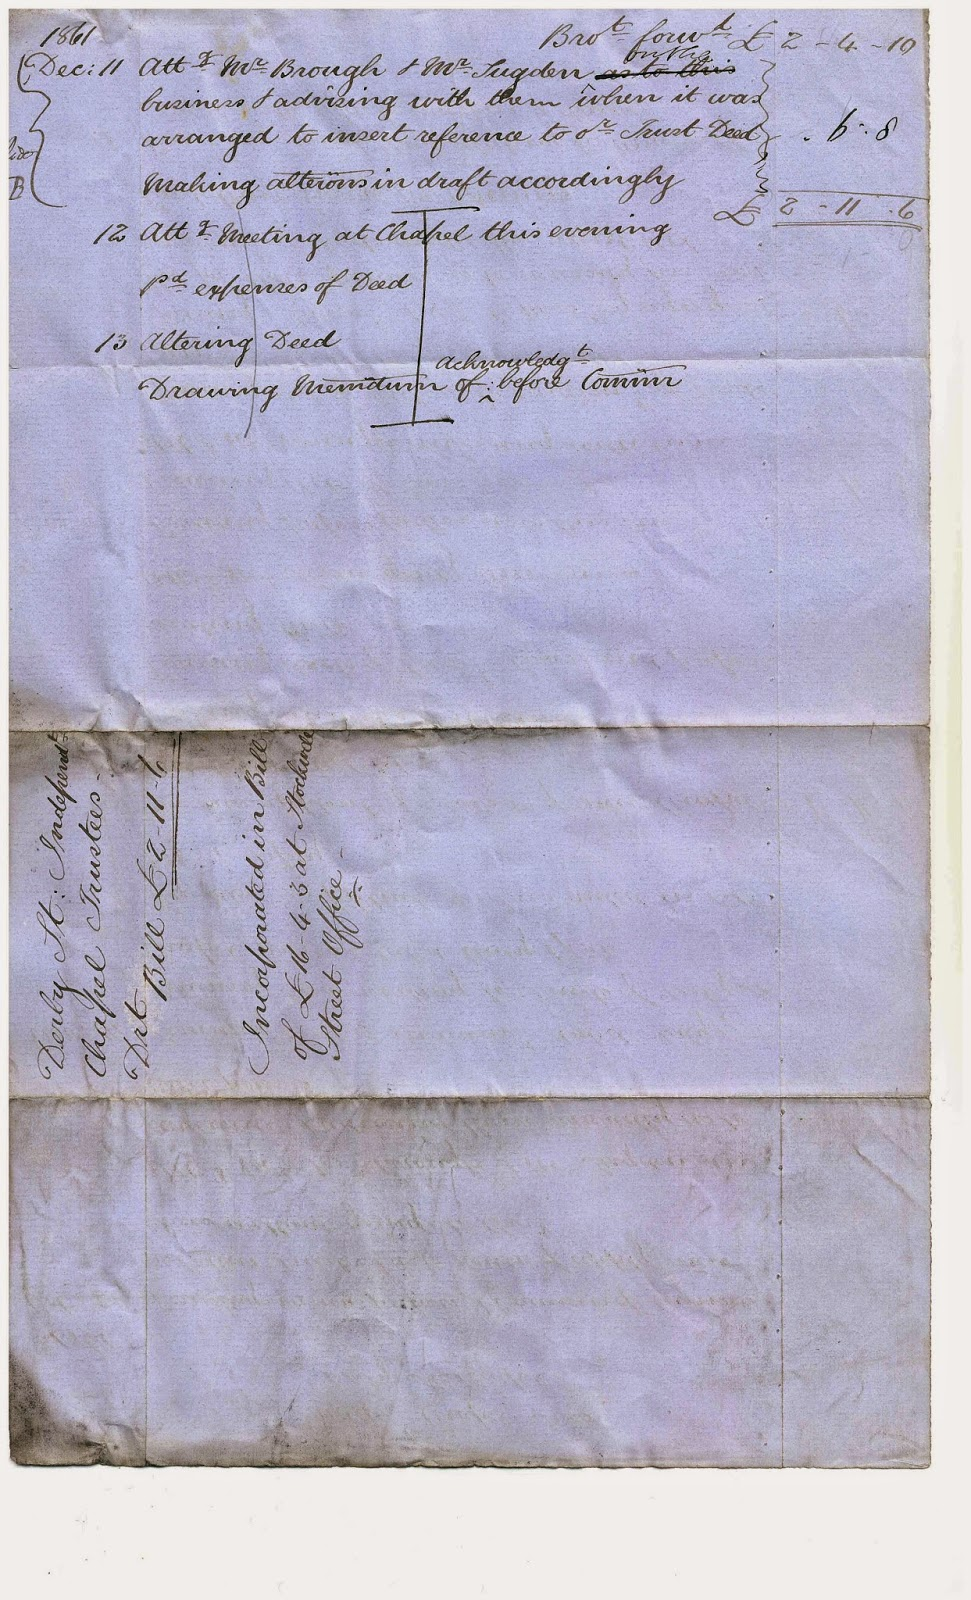 Handwritten Draft Bill for Derby Street, Independent Chapel Trustees, 1861, Page 3